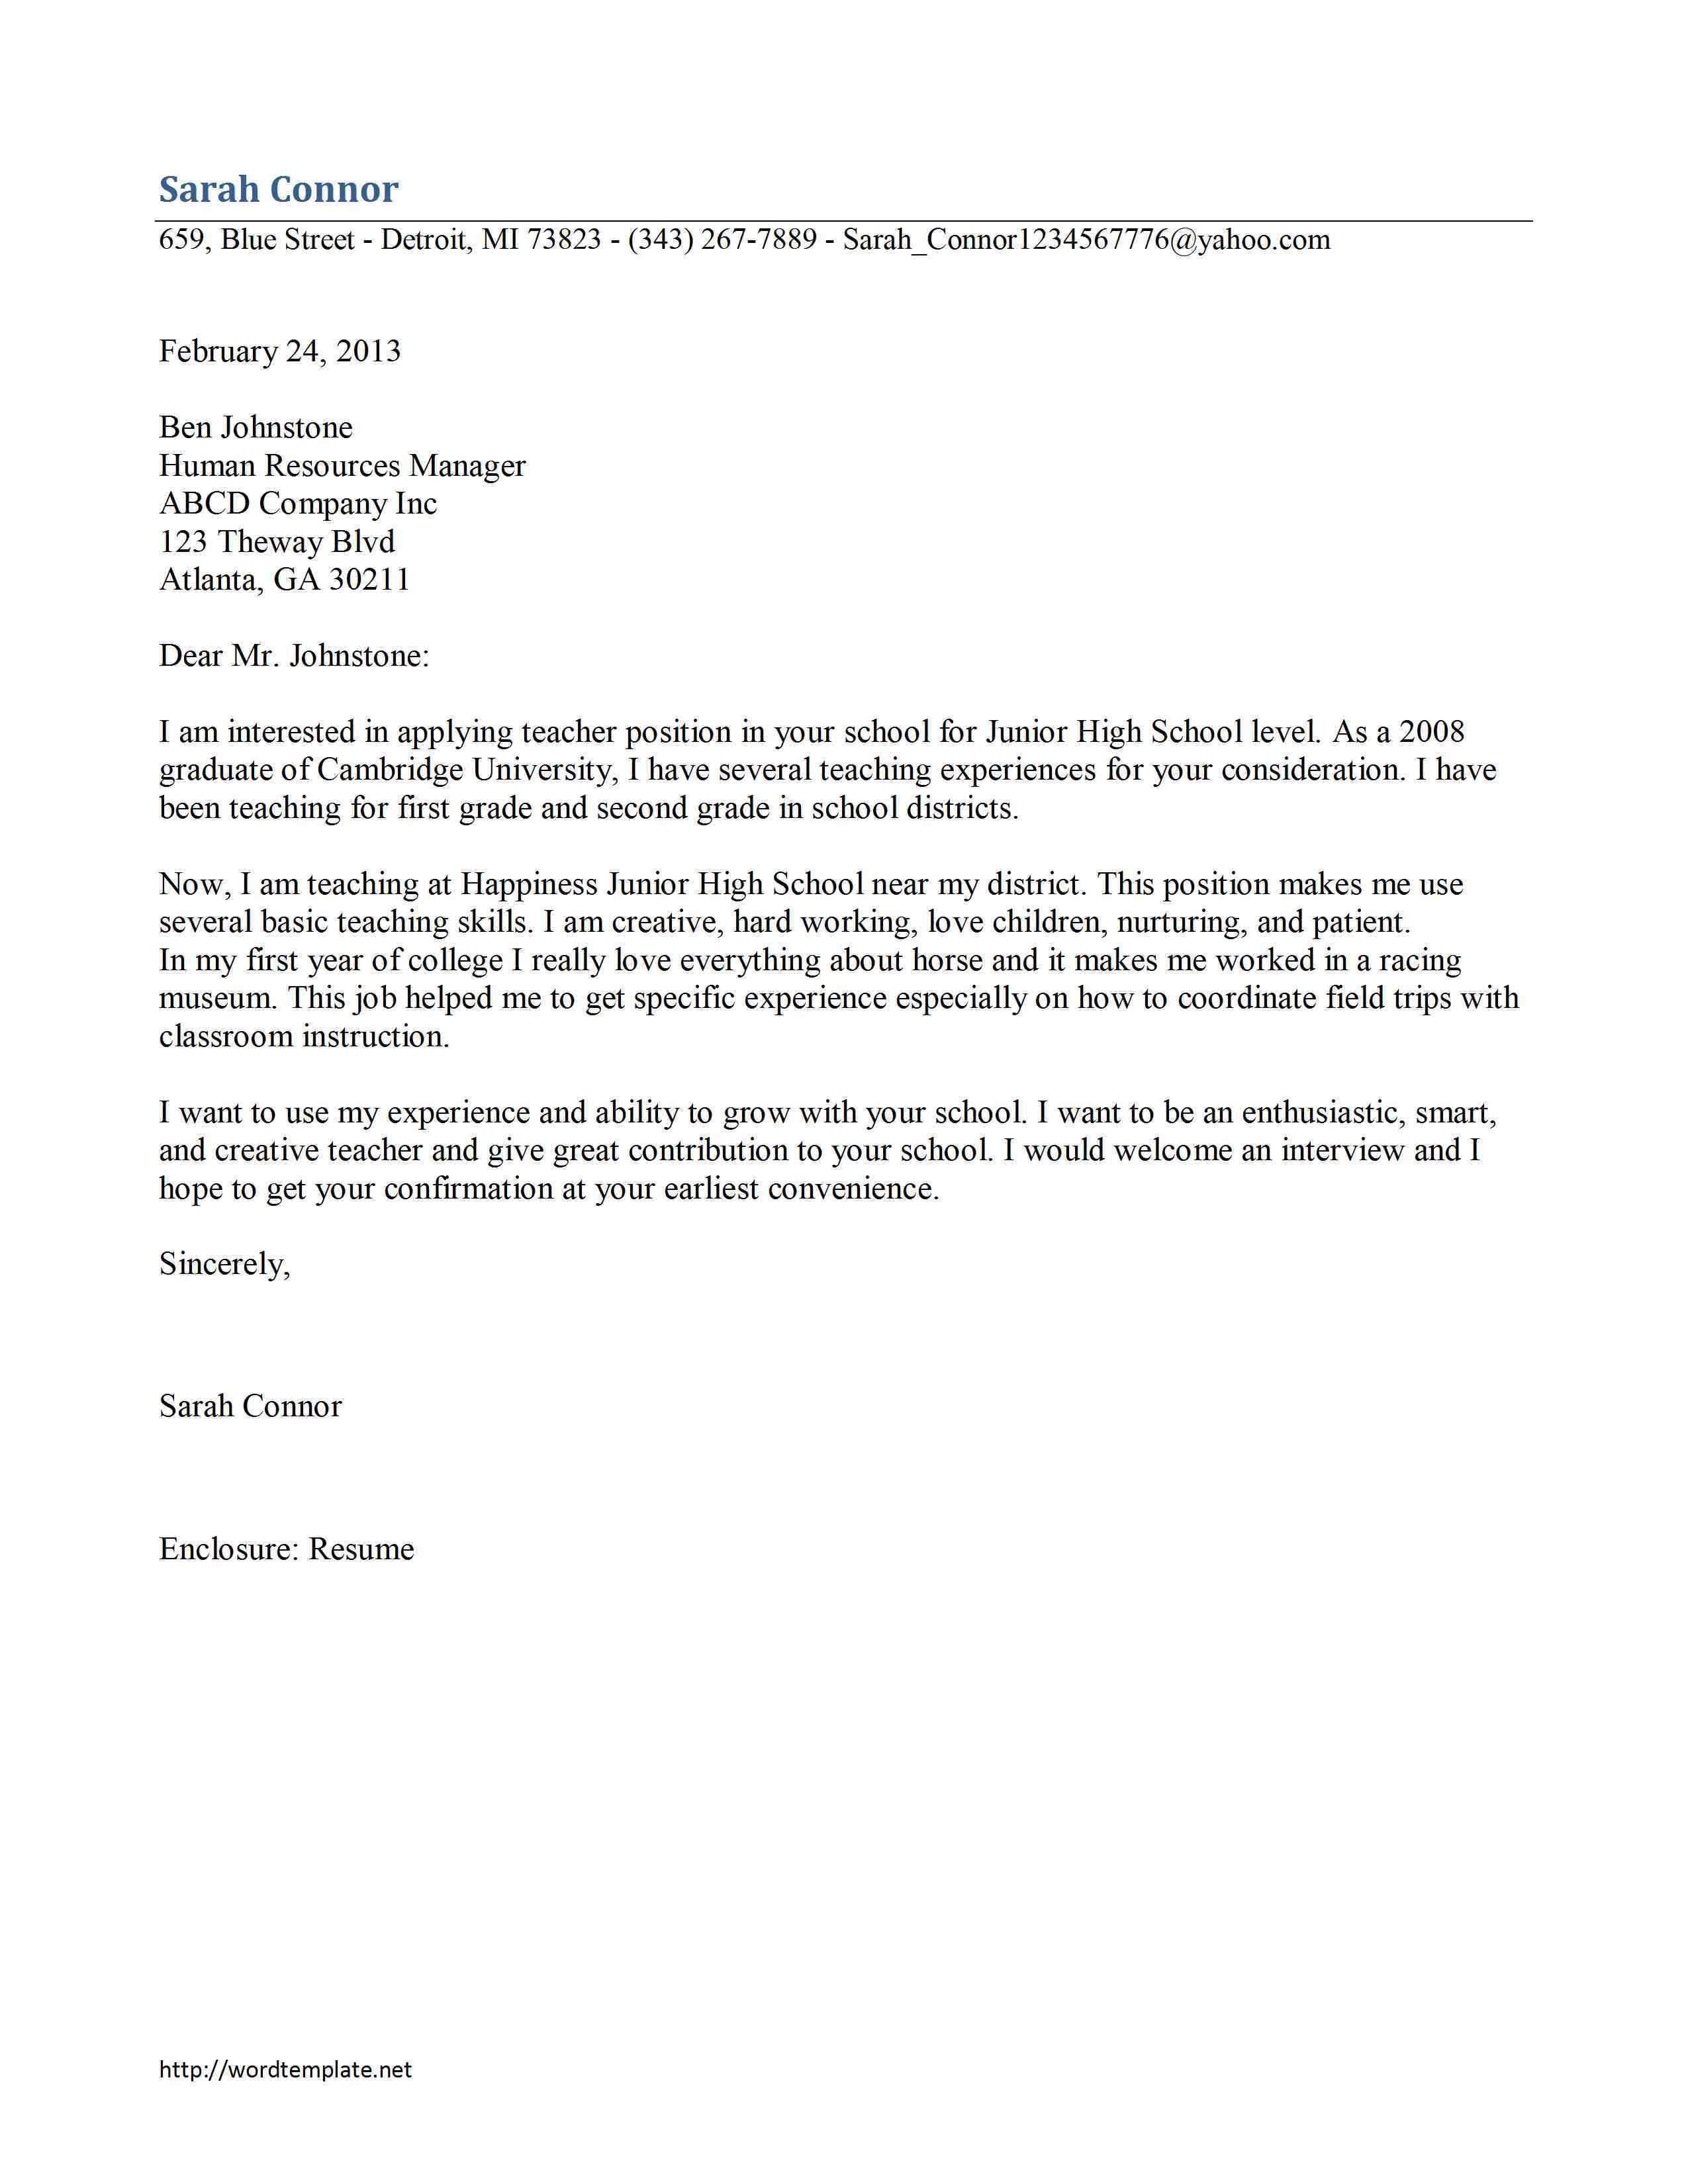 Template for Cover Letter for Teaching Position - Application Letter for Experience Certificate for Teacher Penn State